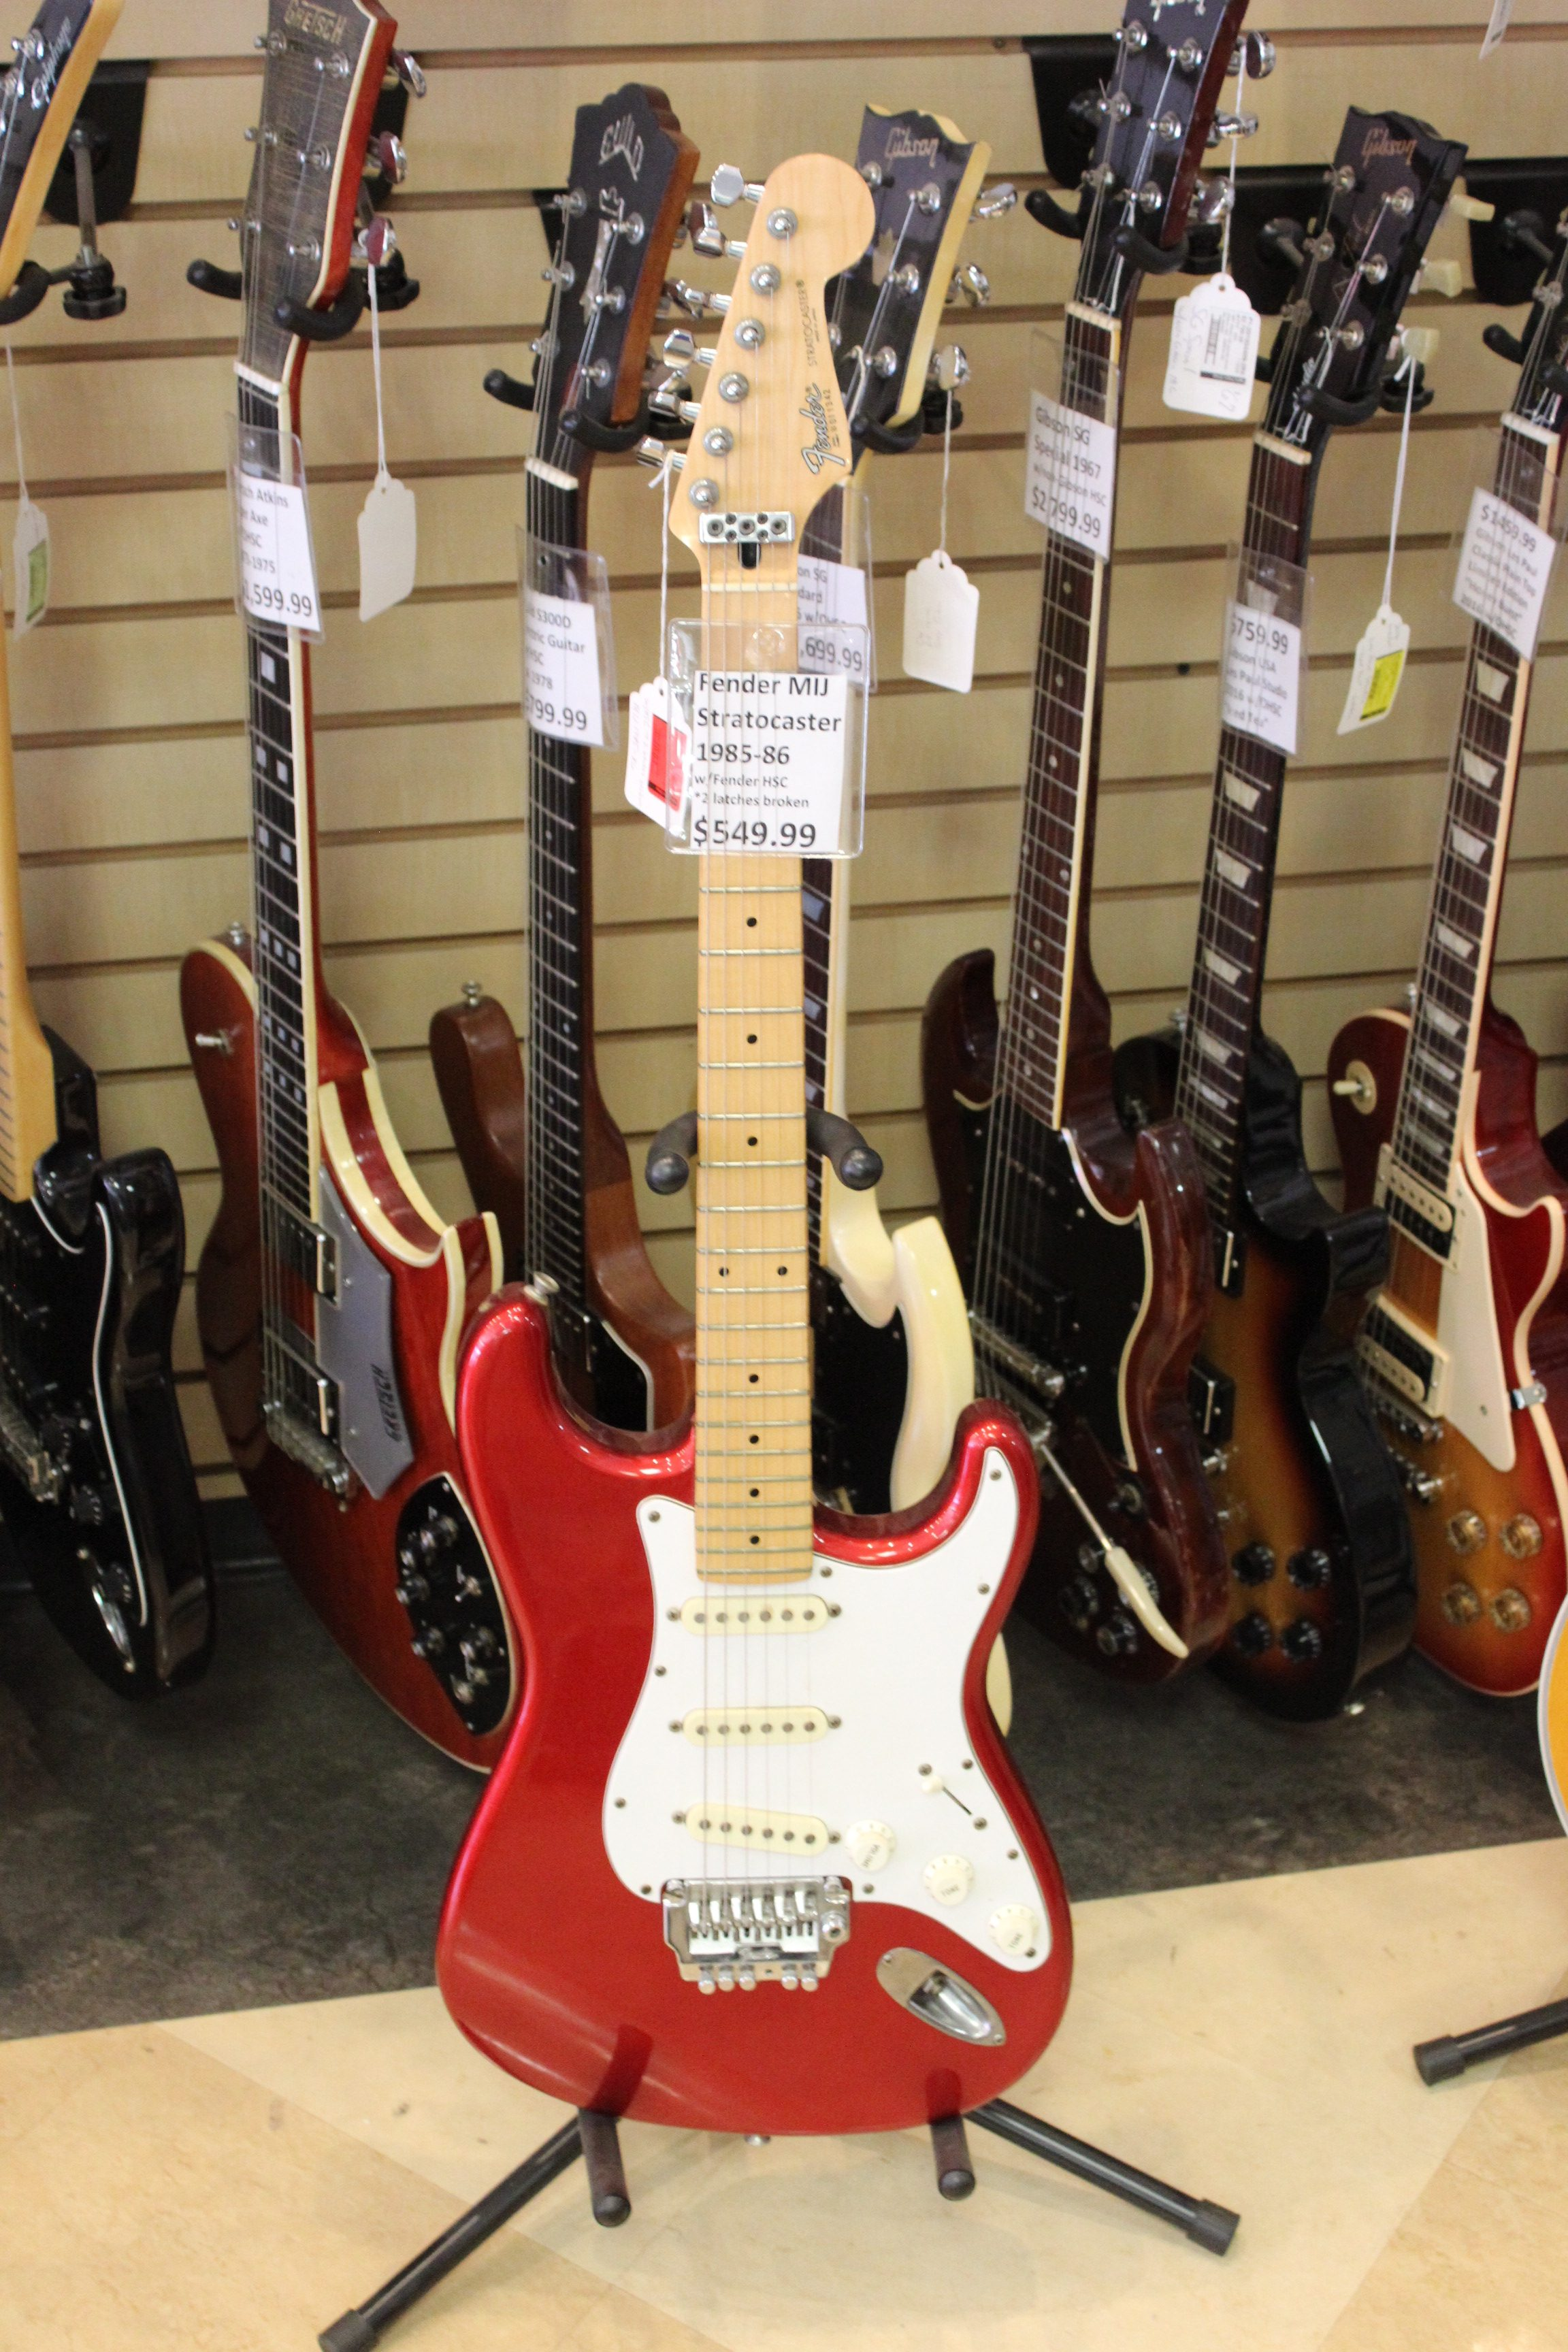 fender stratocaster mij 1980s electric guitar used ted 39 s pawn shop. Black Bedroom Furniture Sets. Home Design Ideas